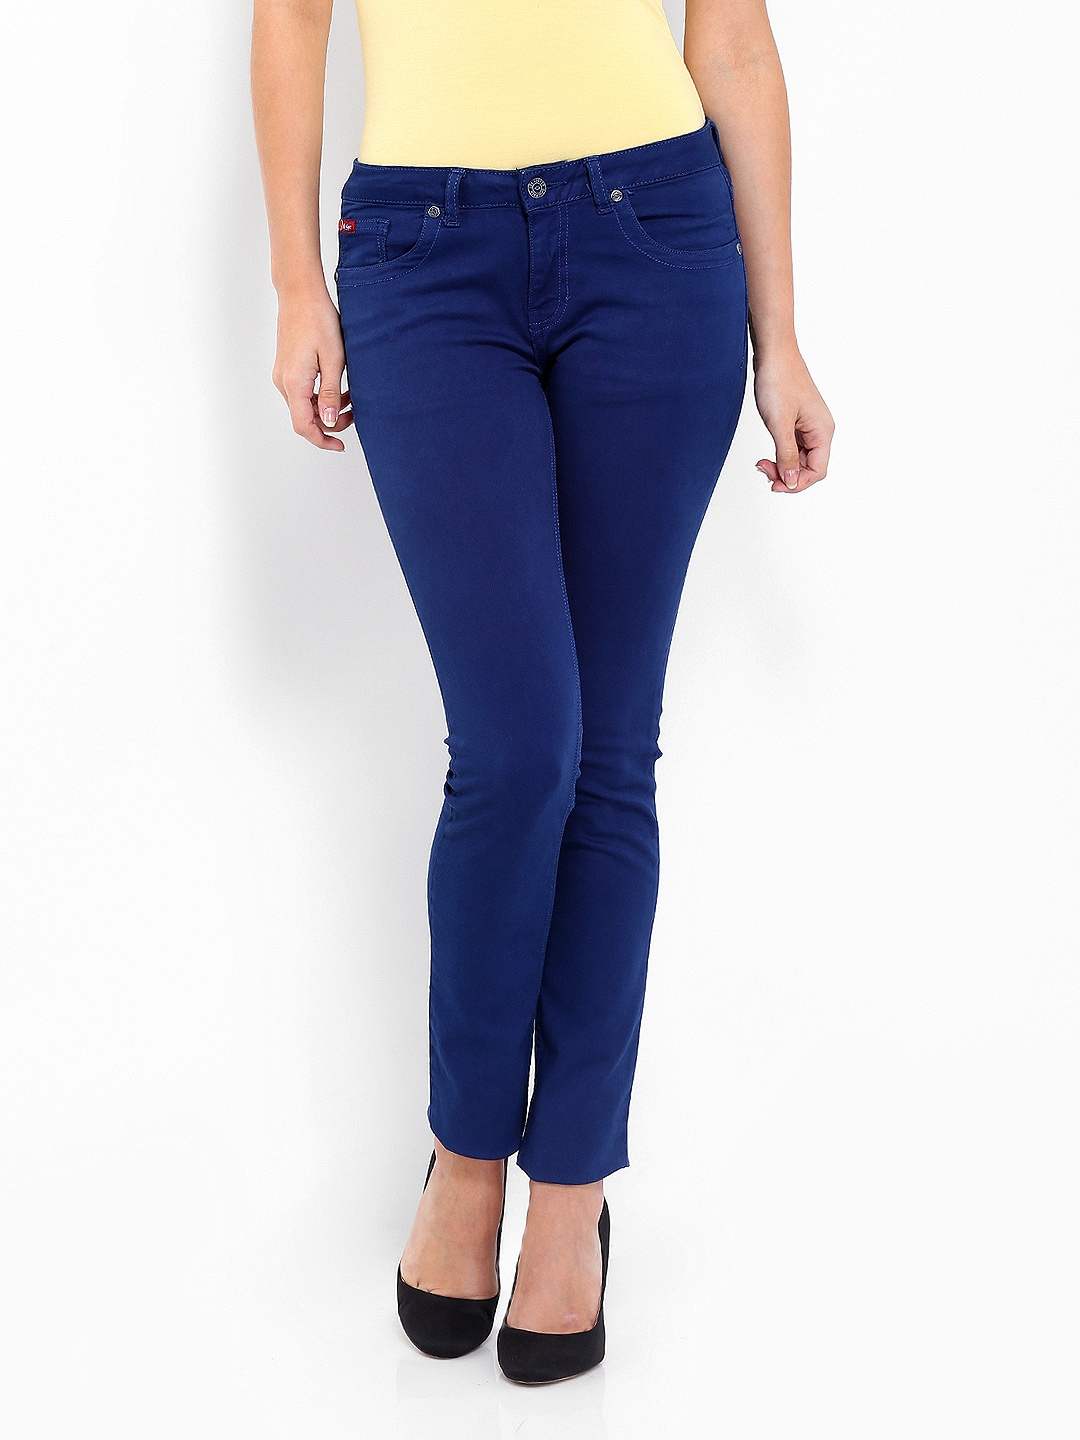 lee cooper jeans for women - photo #6